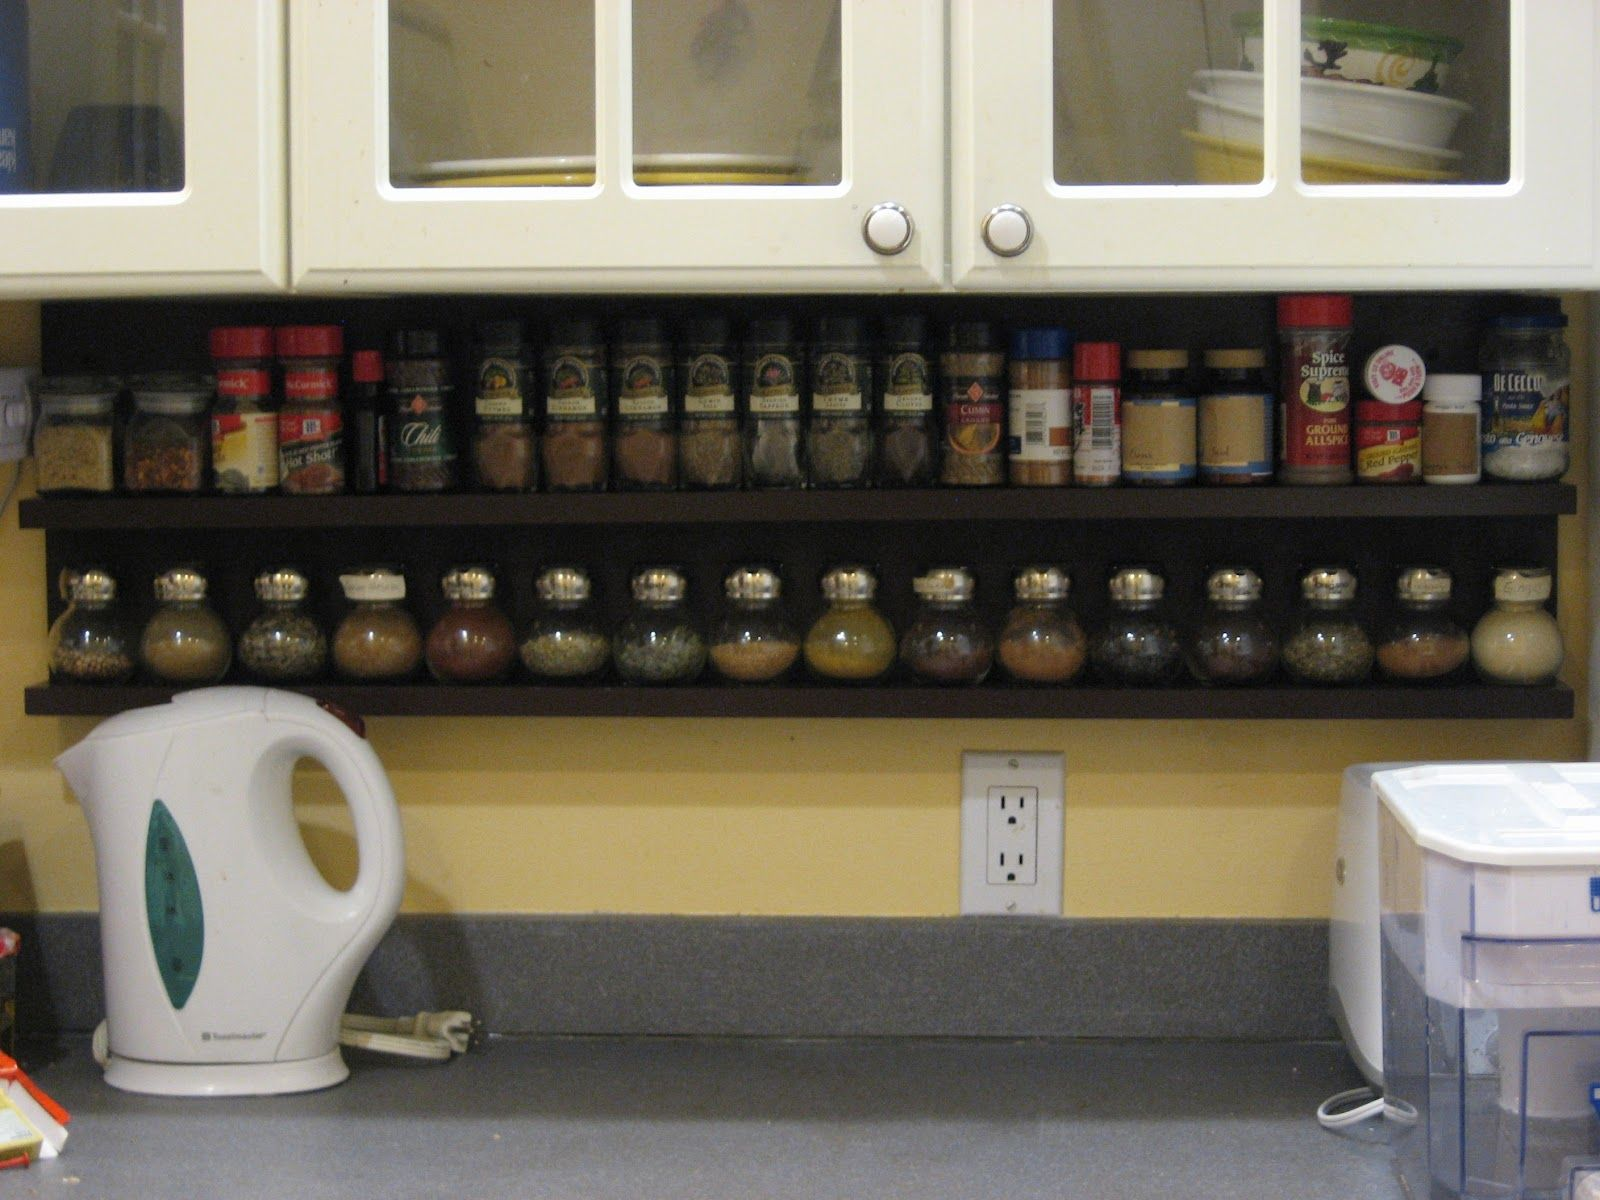 how do commercial kitchens store spices | Spice Storage and ...